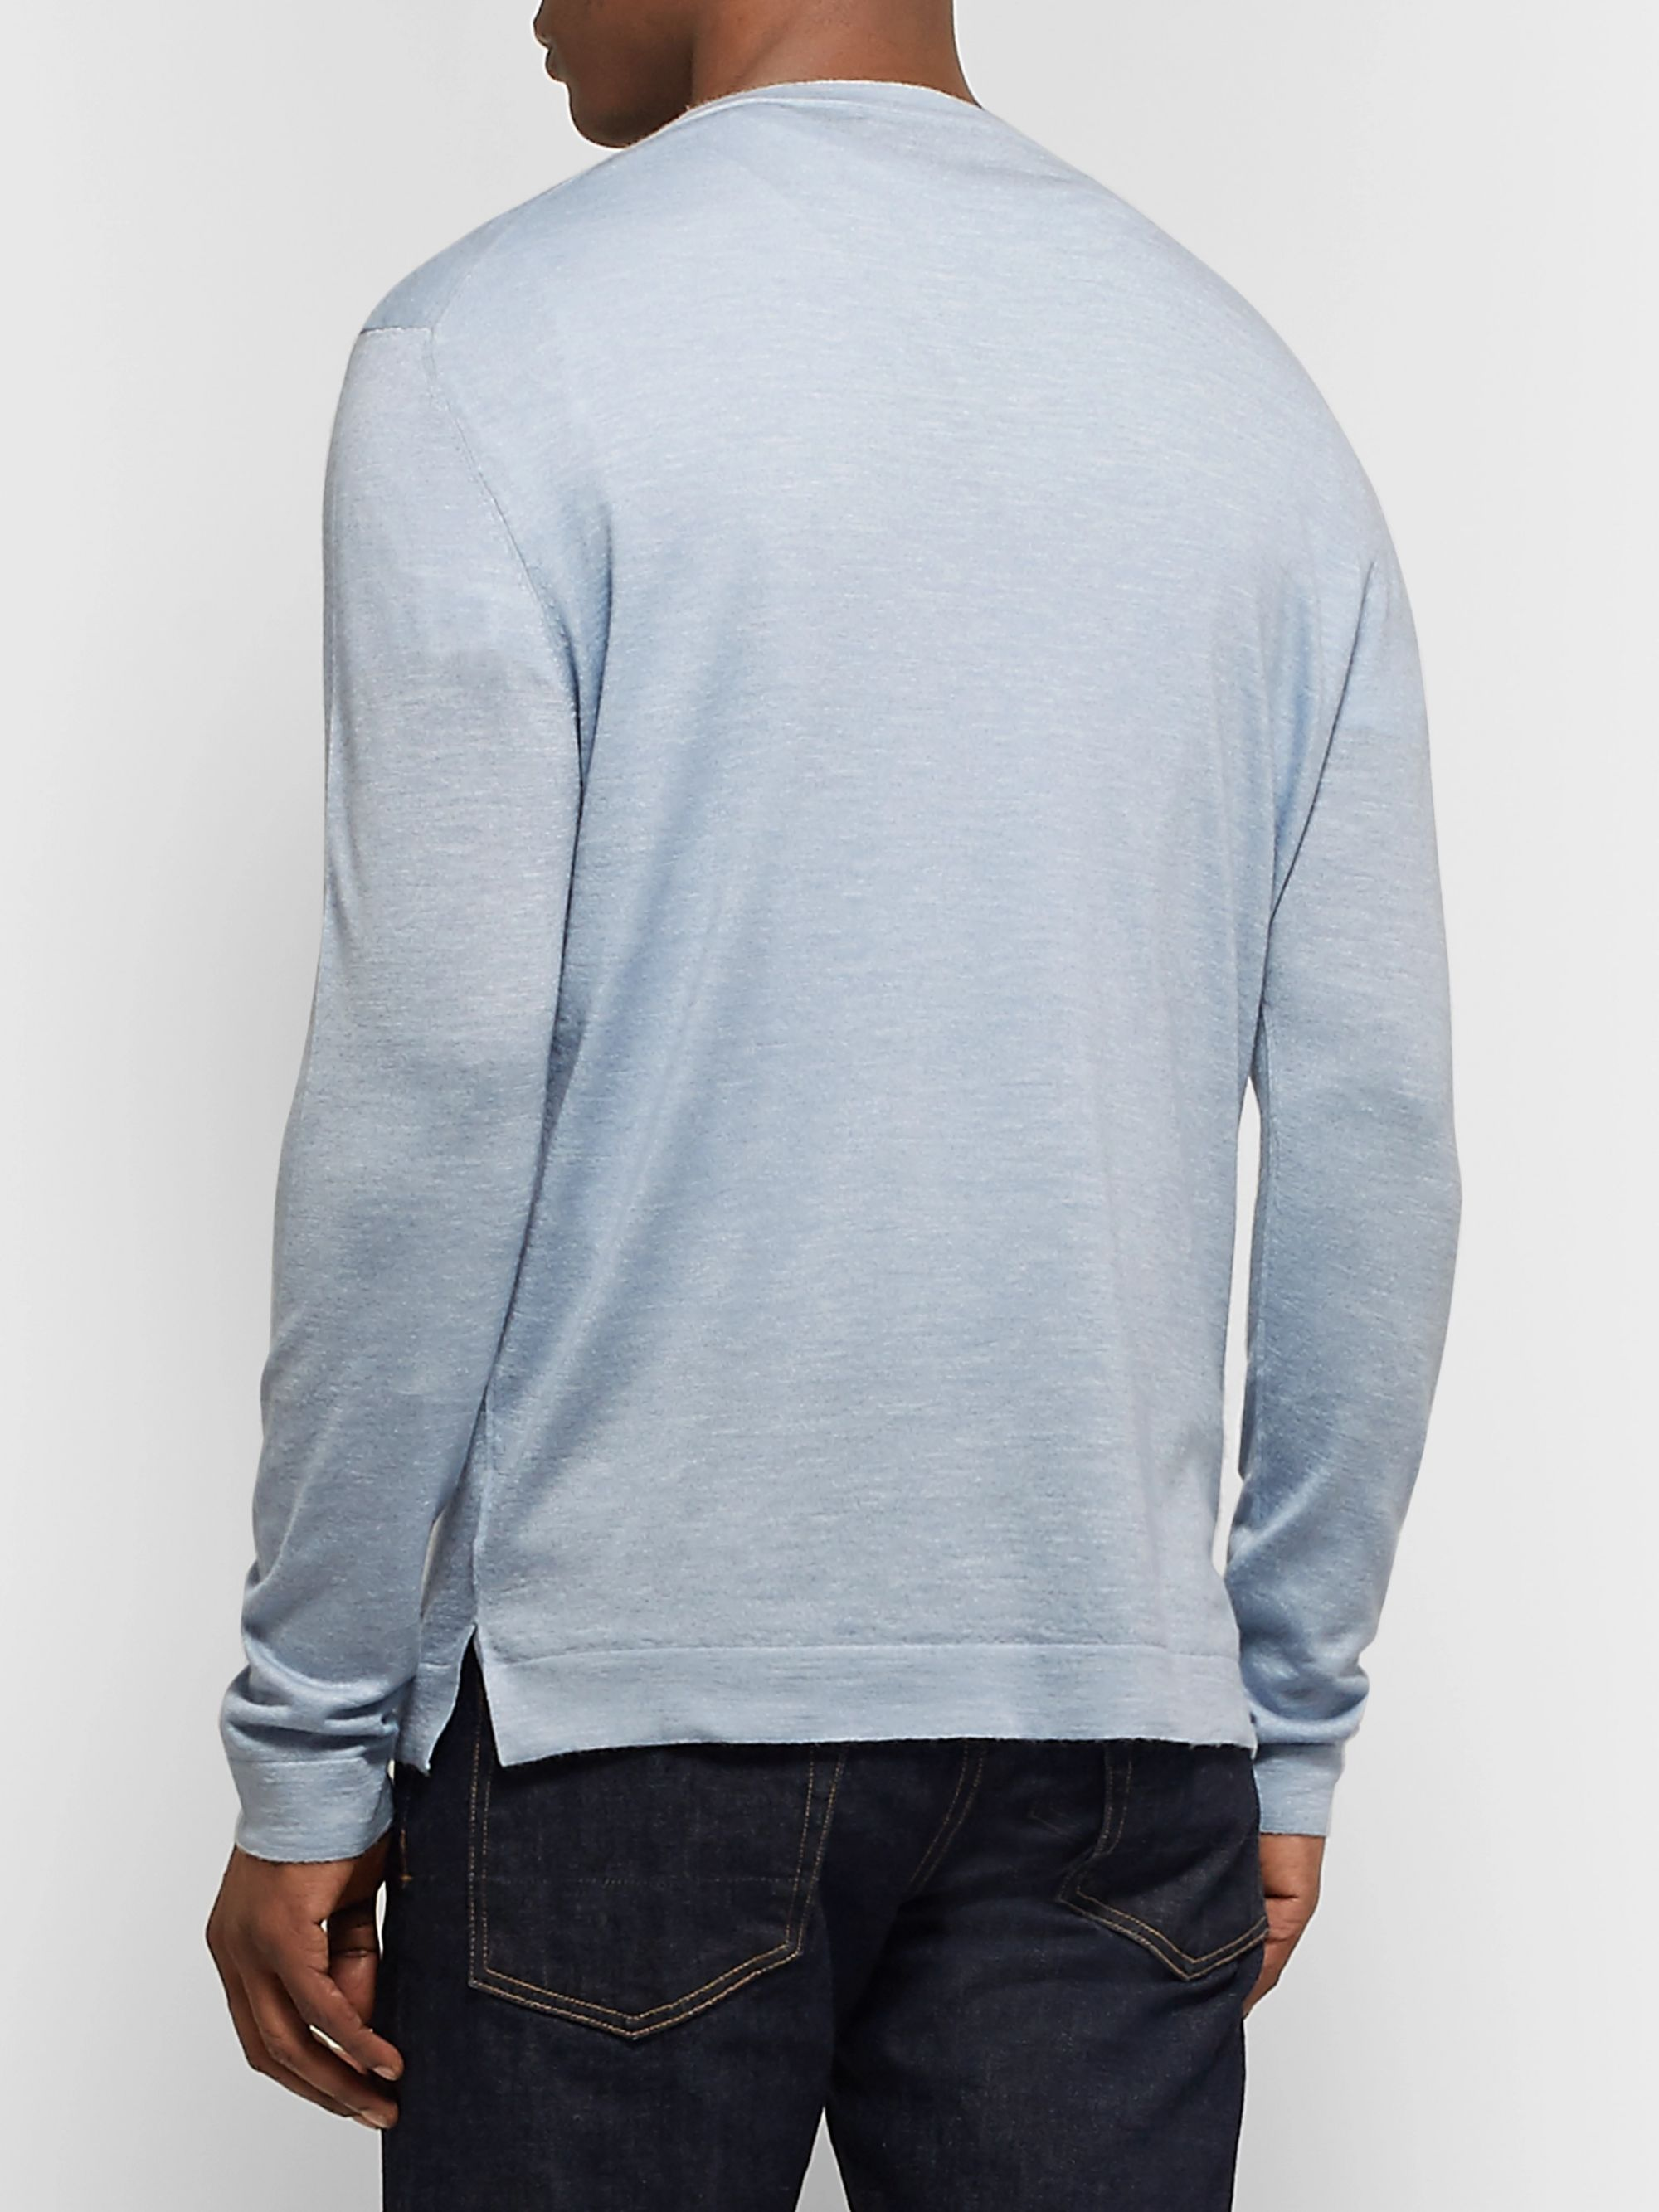 Ermenegildo Zegna Slub Cashmere, Silk and Linen-Blend Sweater